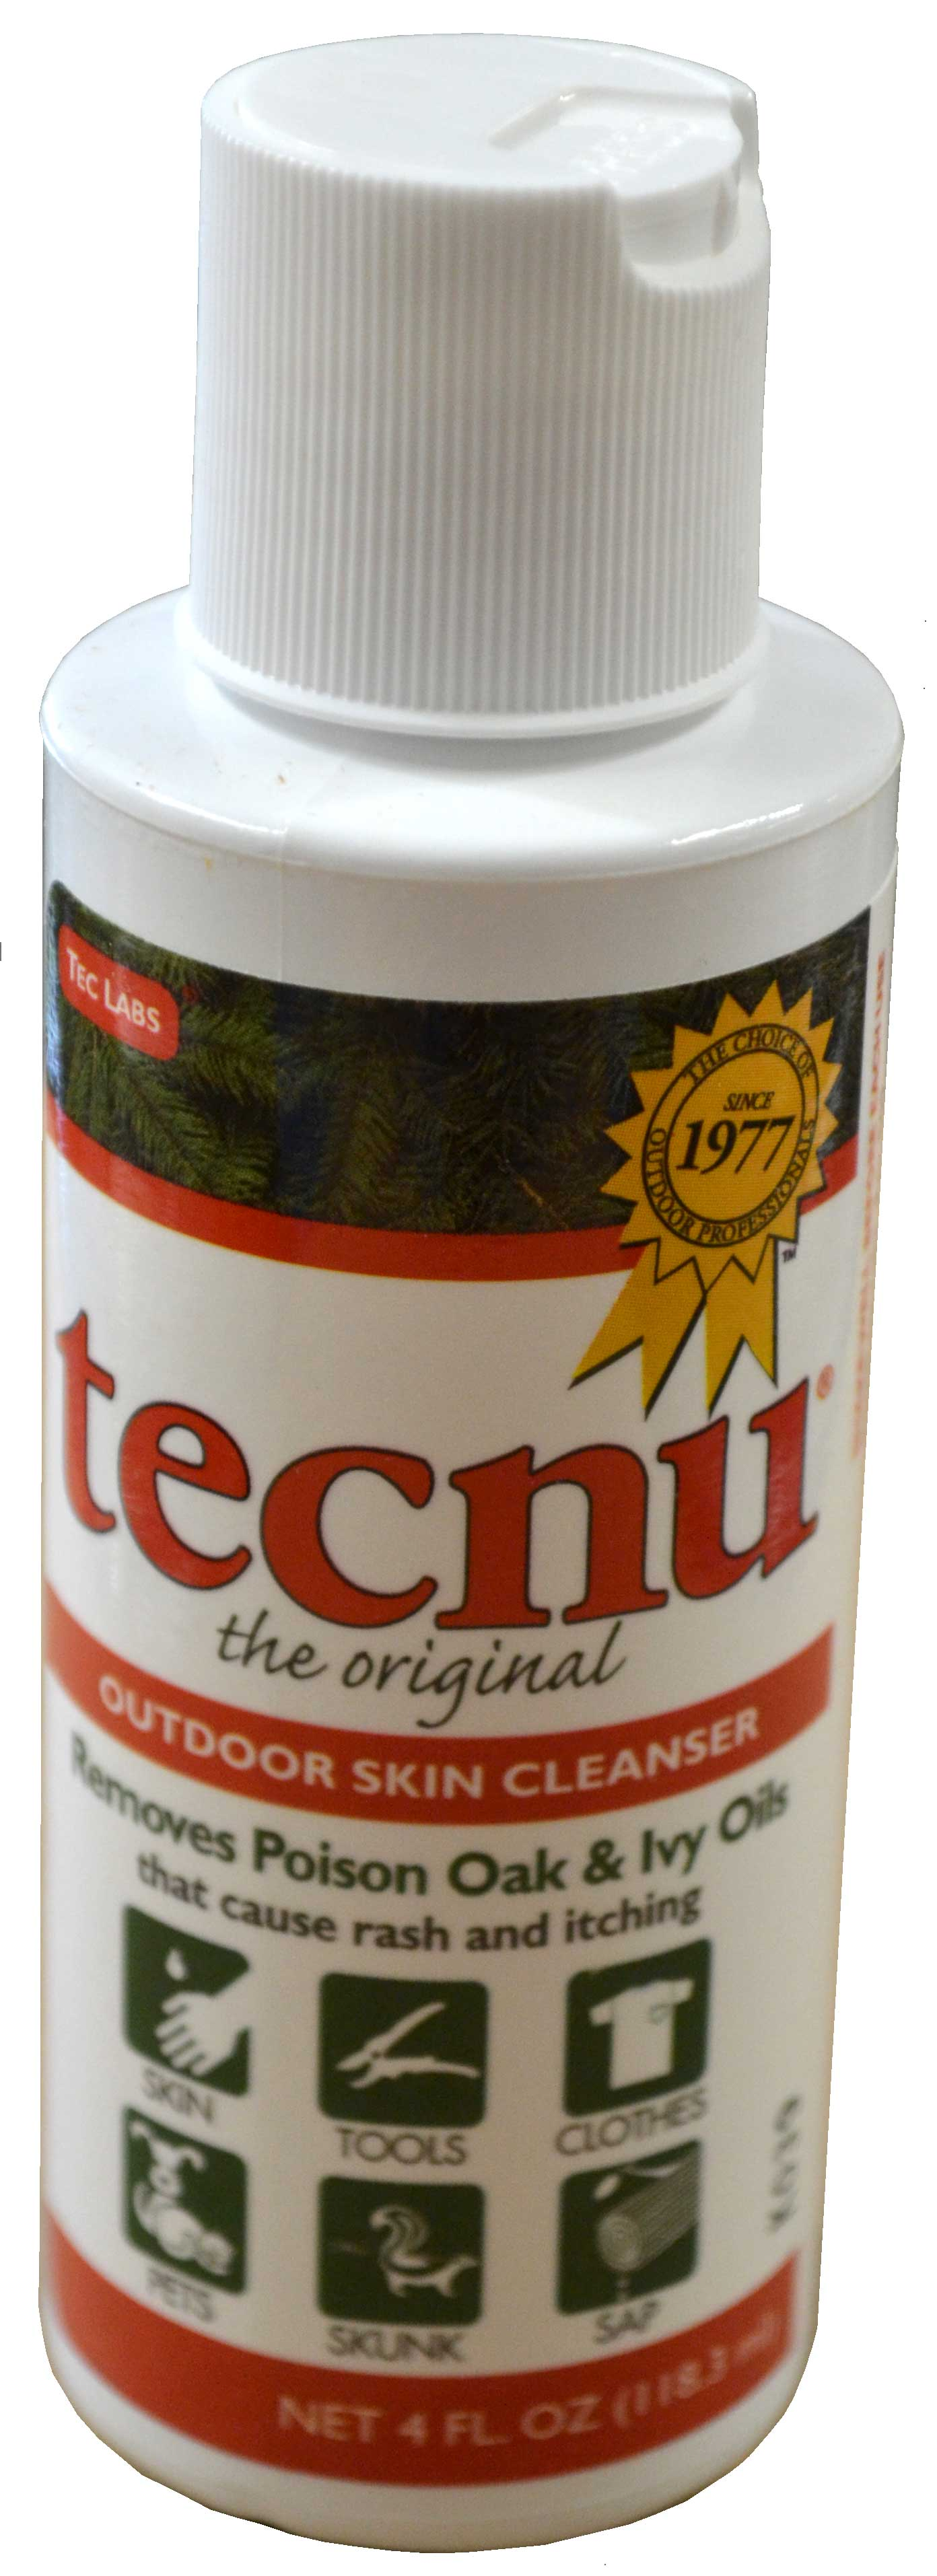 Tecnu Oak-N-Ivy Brand Outdoor Skin Cleanser 4 oz. Bottle